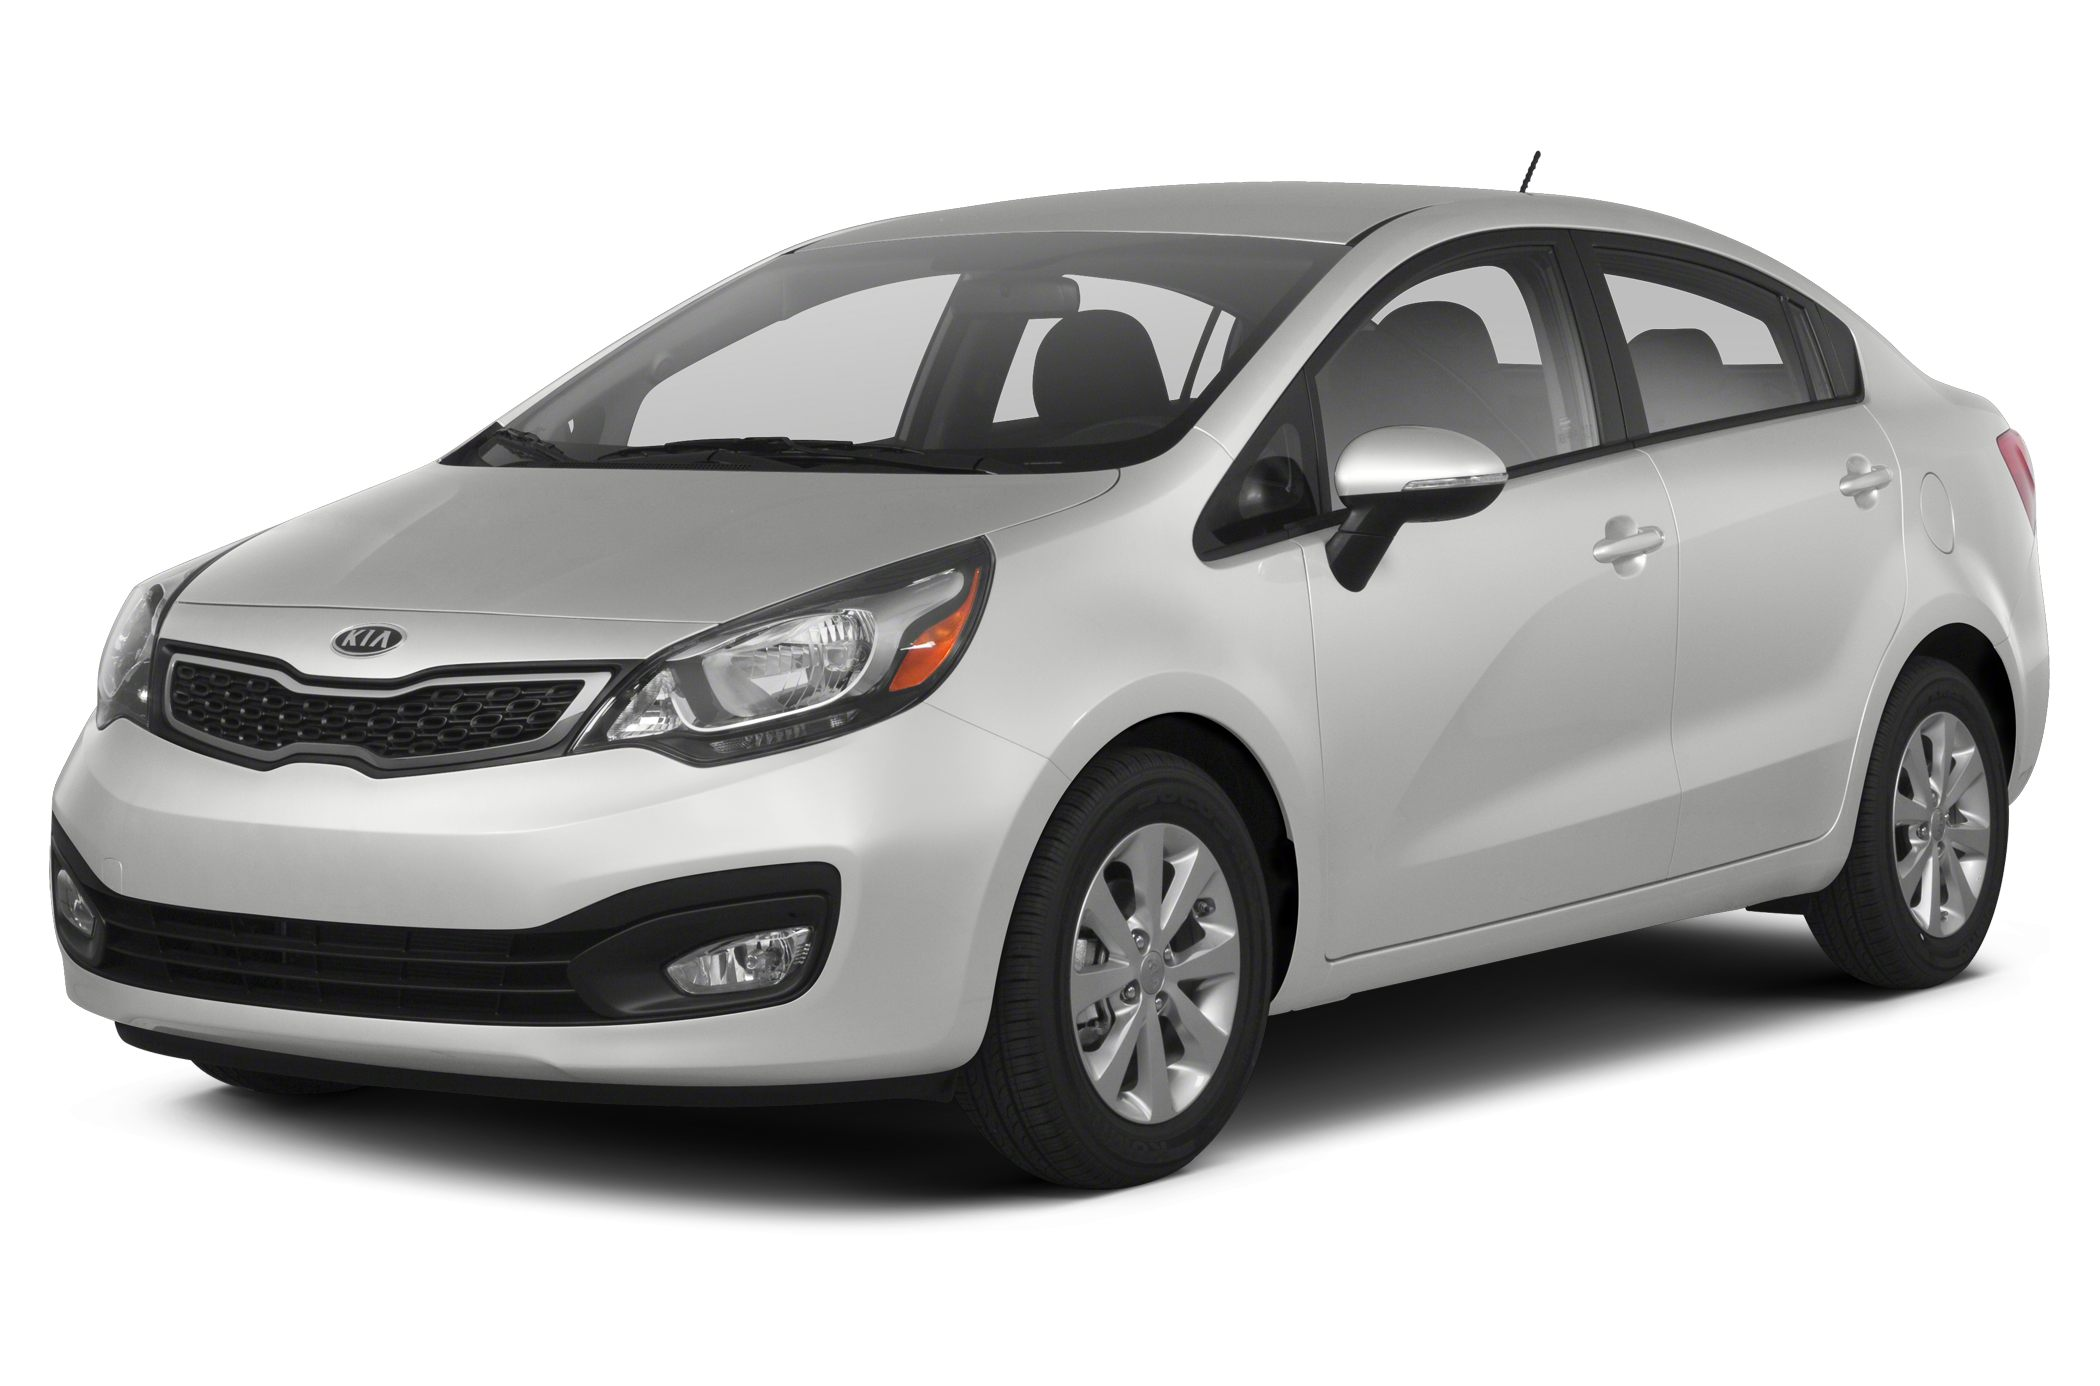 2013 Kia Rio LX Sedan for sale in Palmdale for $0 with 44,103 miles